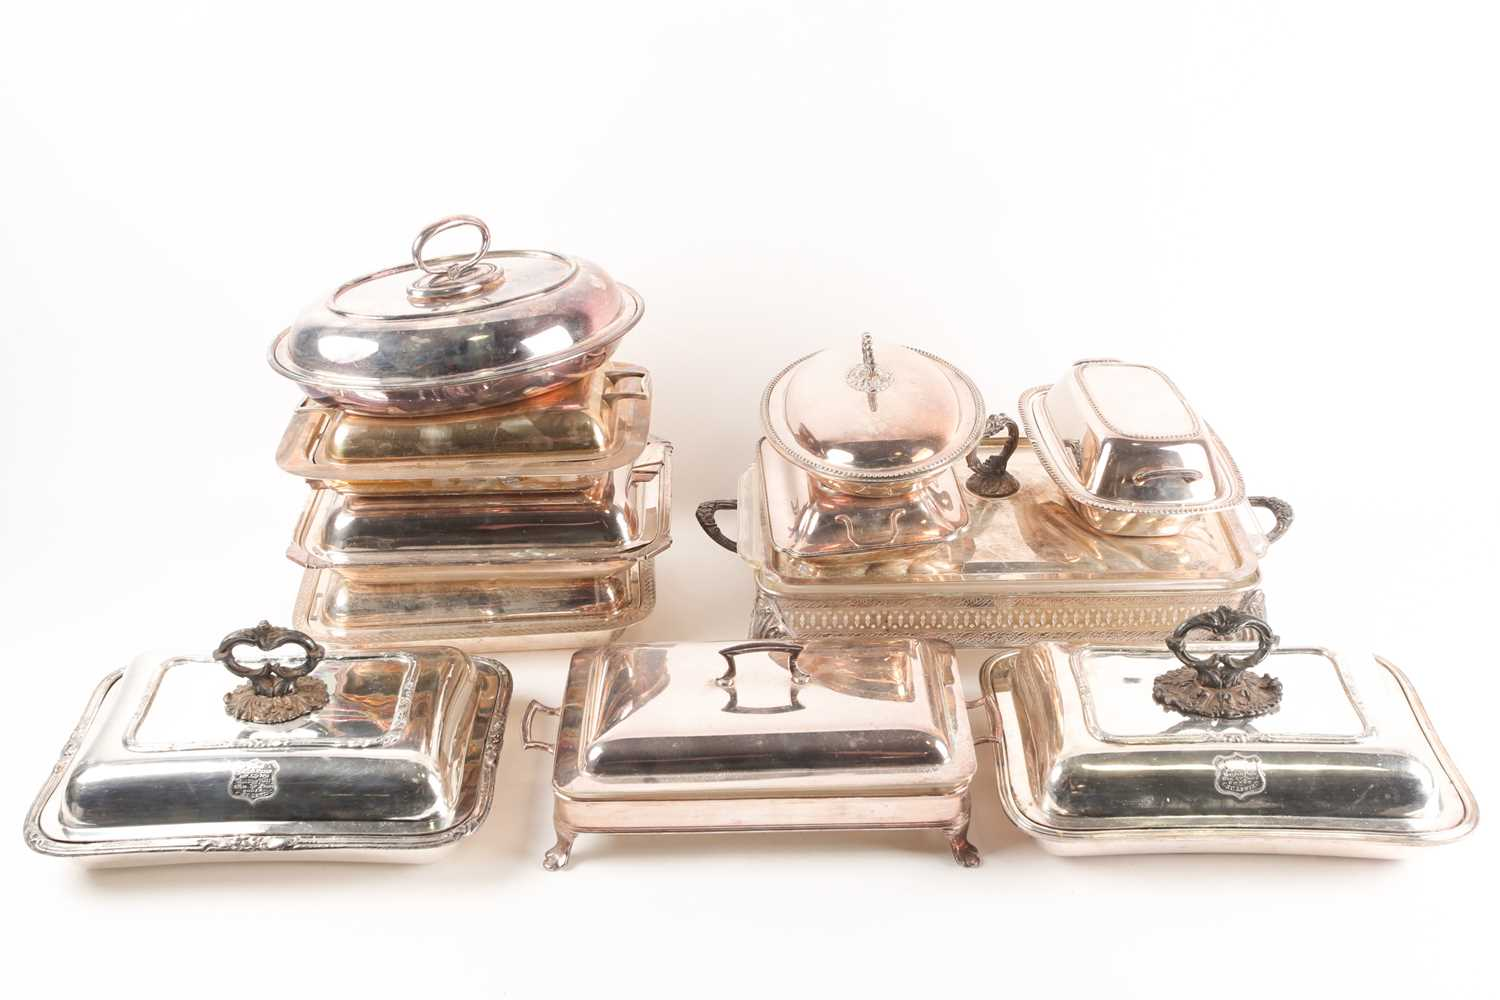 A pair of 19th century silver plated tureens and covers, the covers with shield shape cartouch